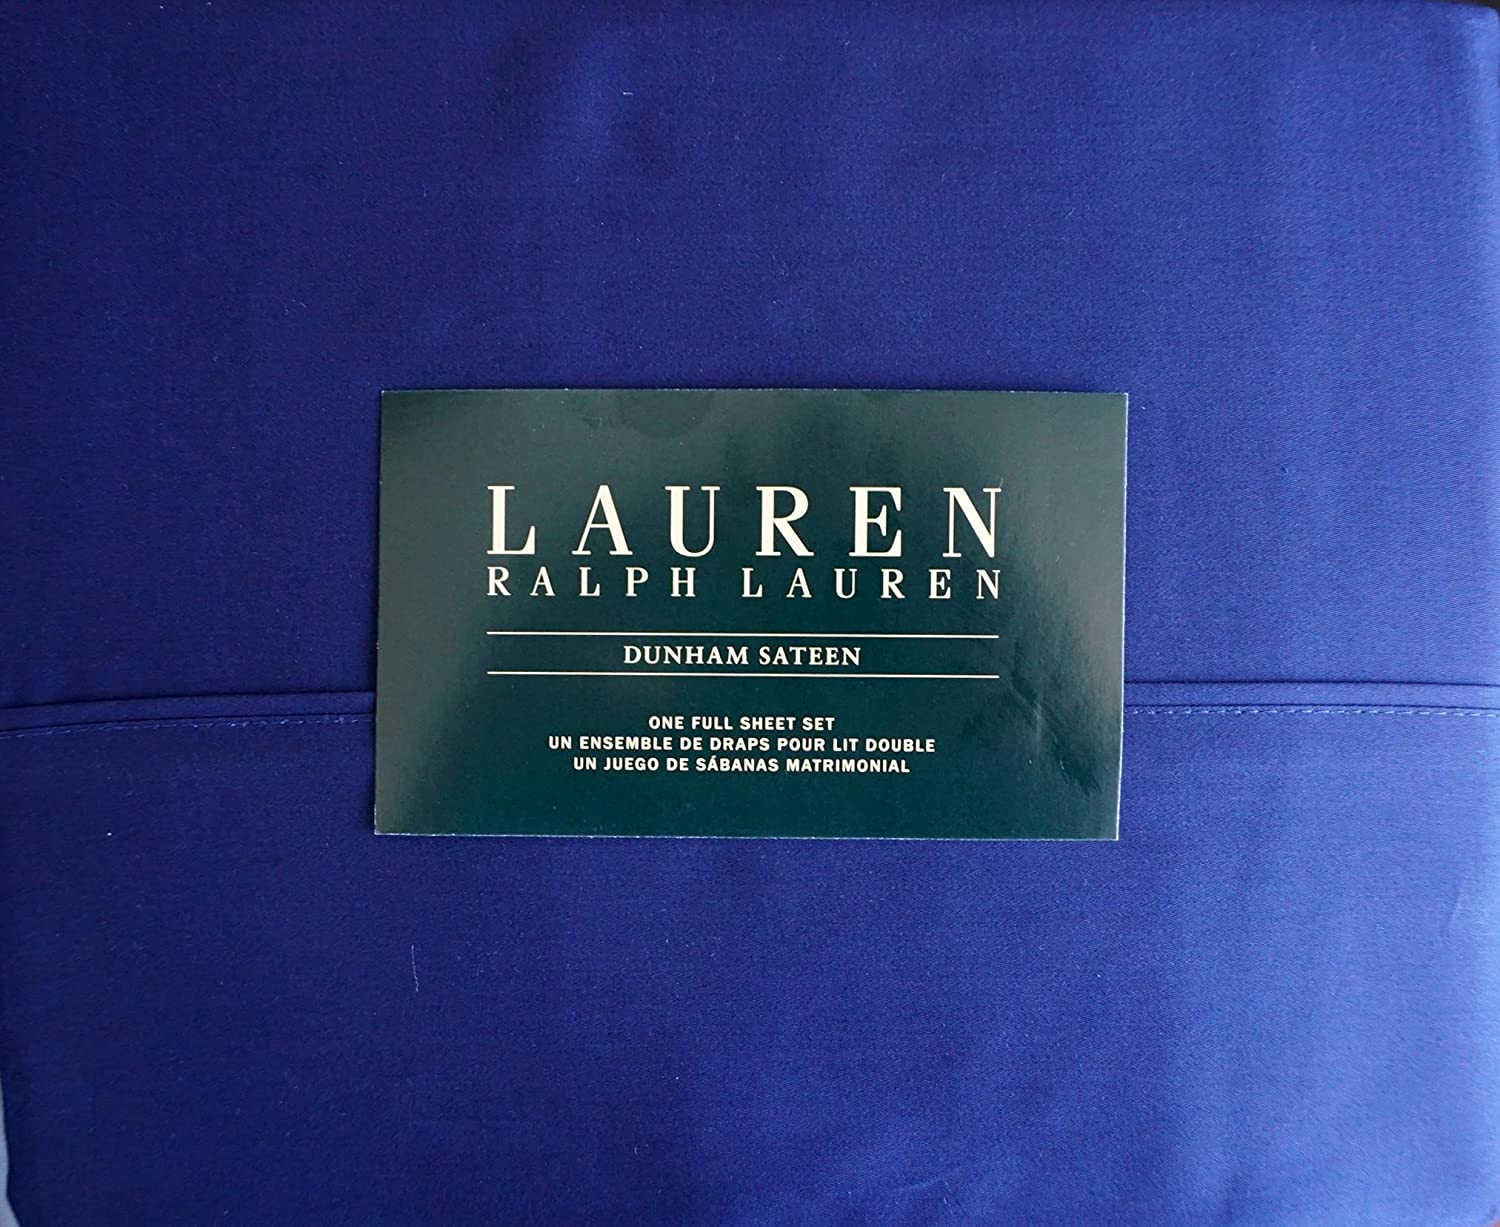 Lauren Ralph Lauren 4 Piece Full Sheet Set Dunham Sateen Cadet bluee